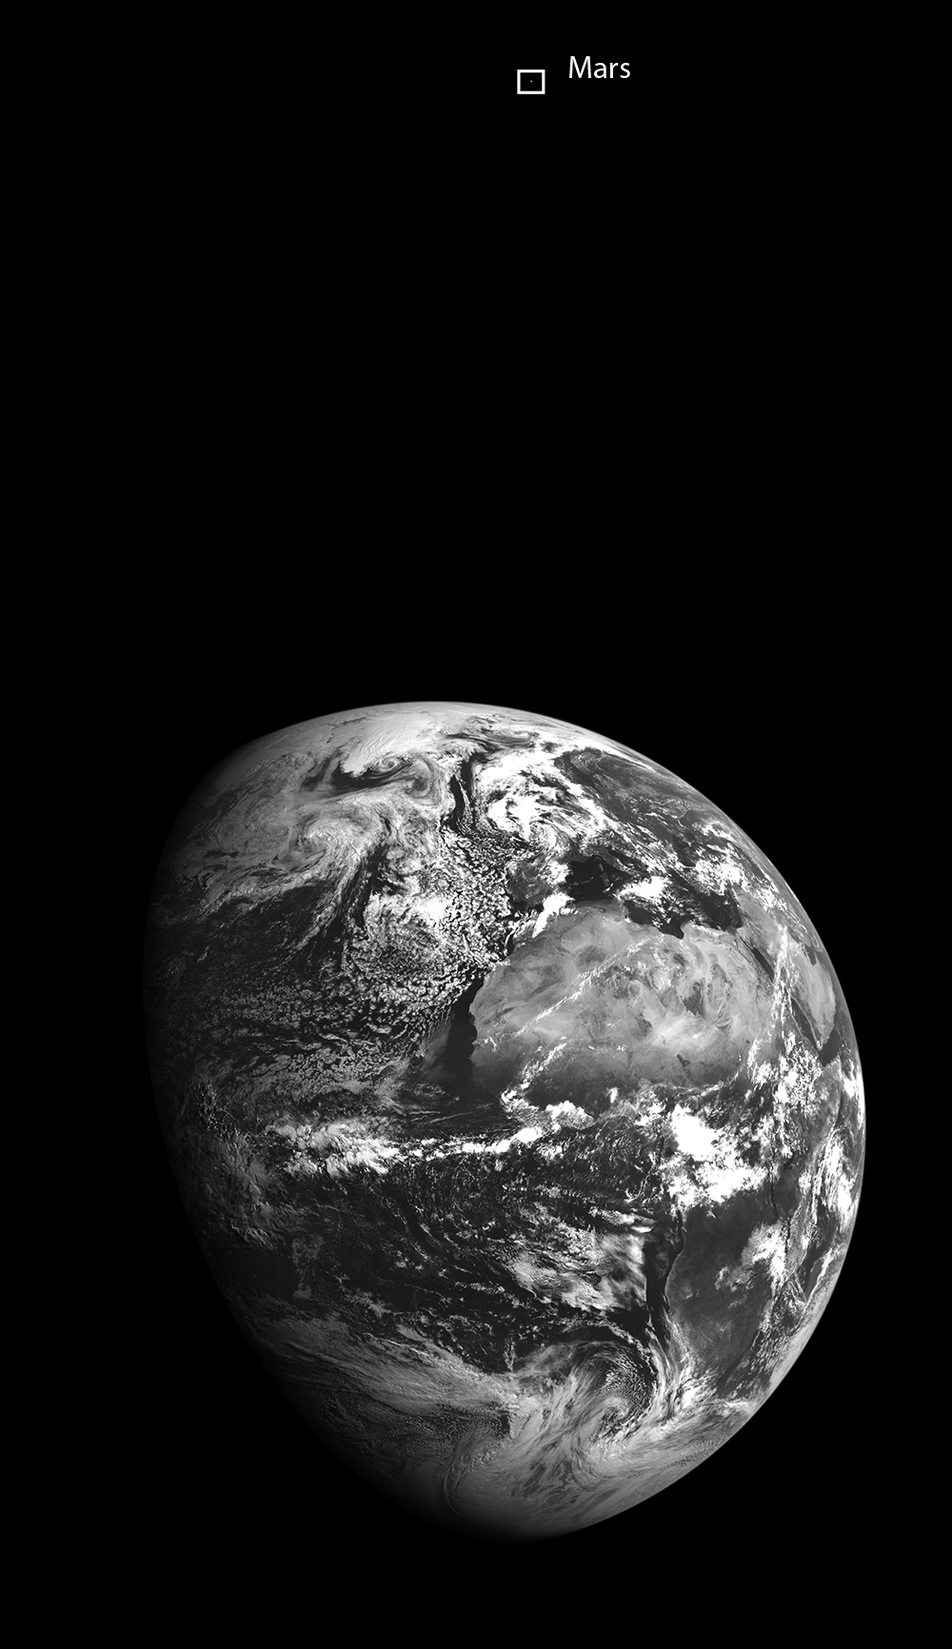 Mars and Earth in one image